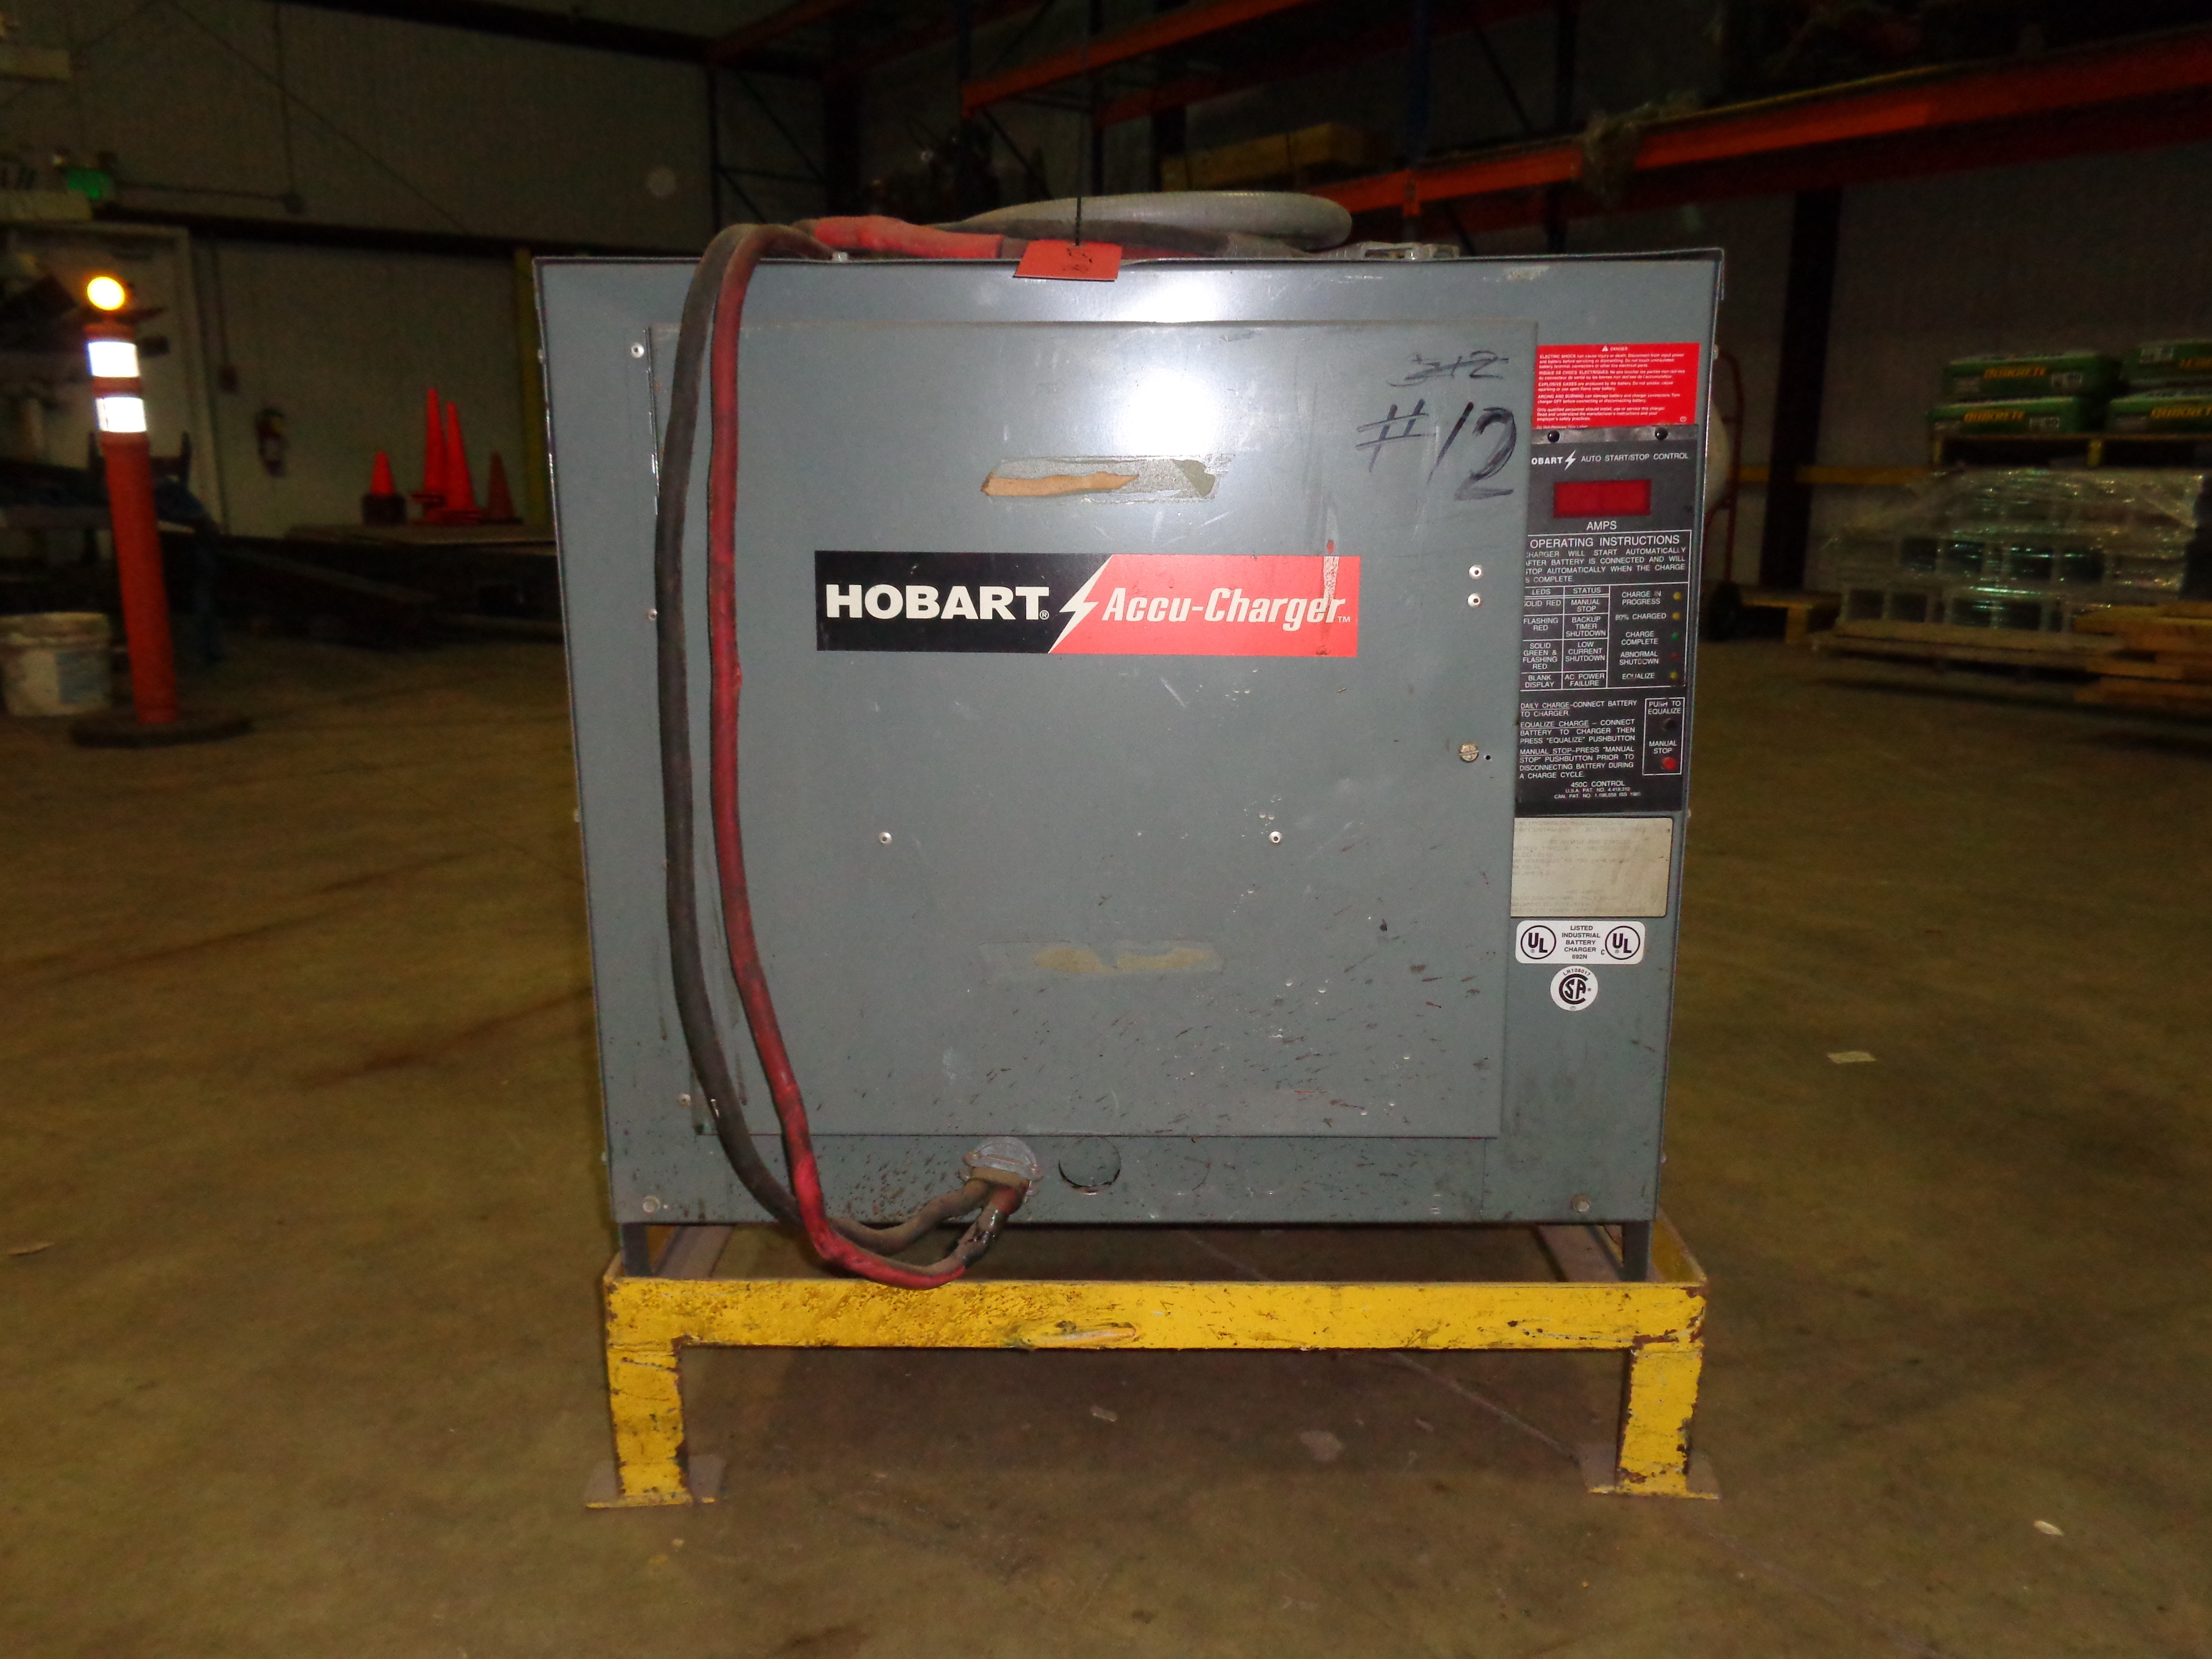 Hobart Accu-Charger Battery Charger 36V